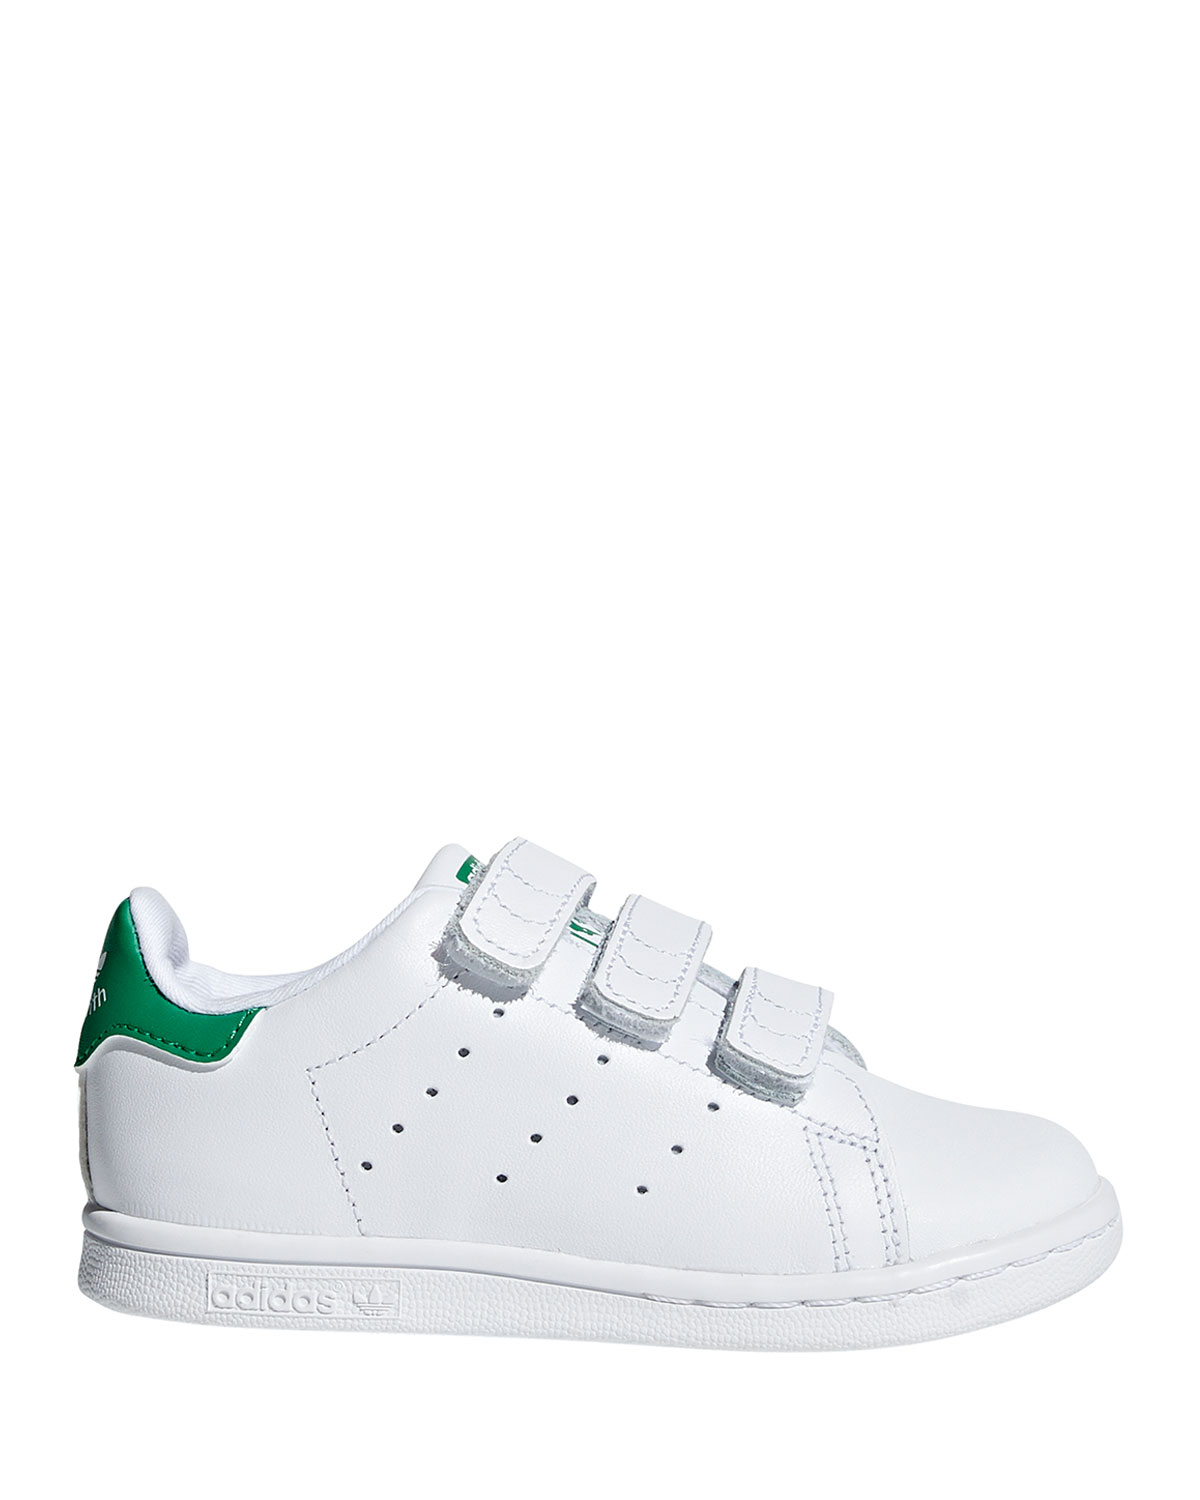 Kids' Stan Smith Classic Grip Strap Sneakers, BabyToddler